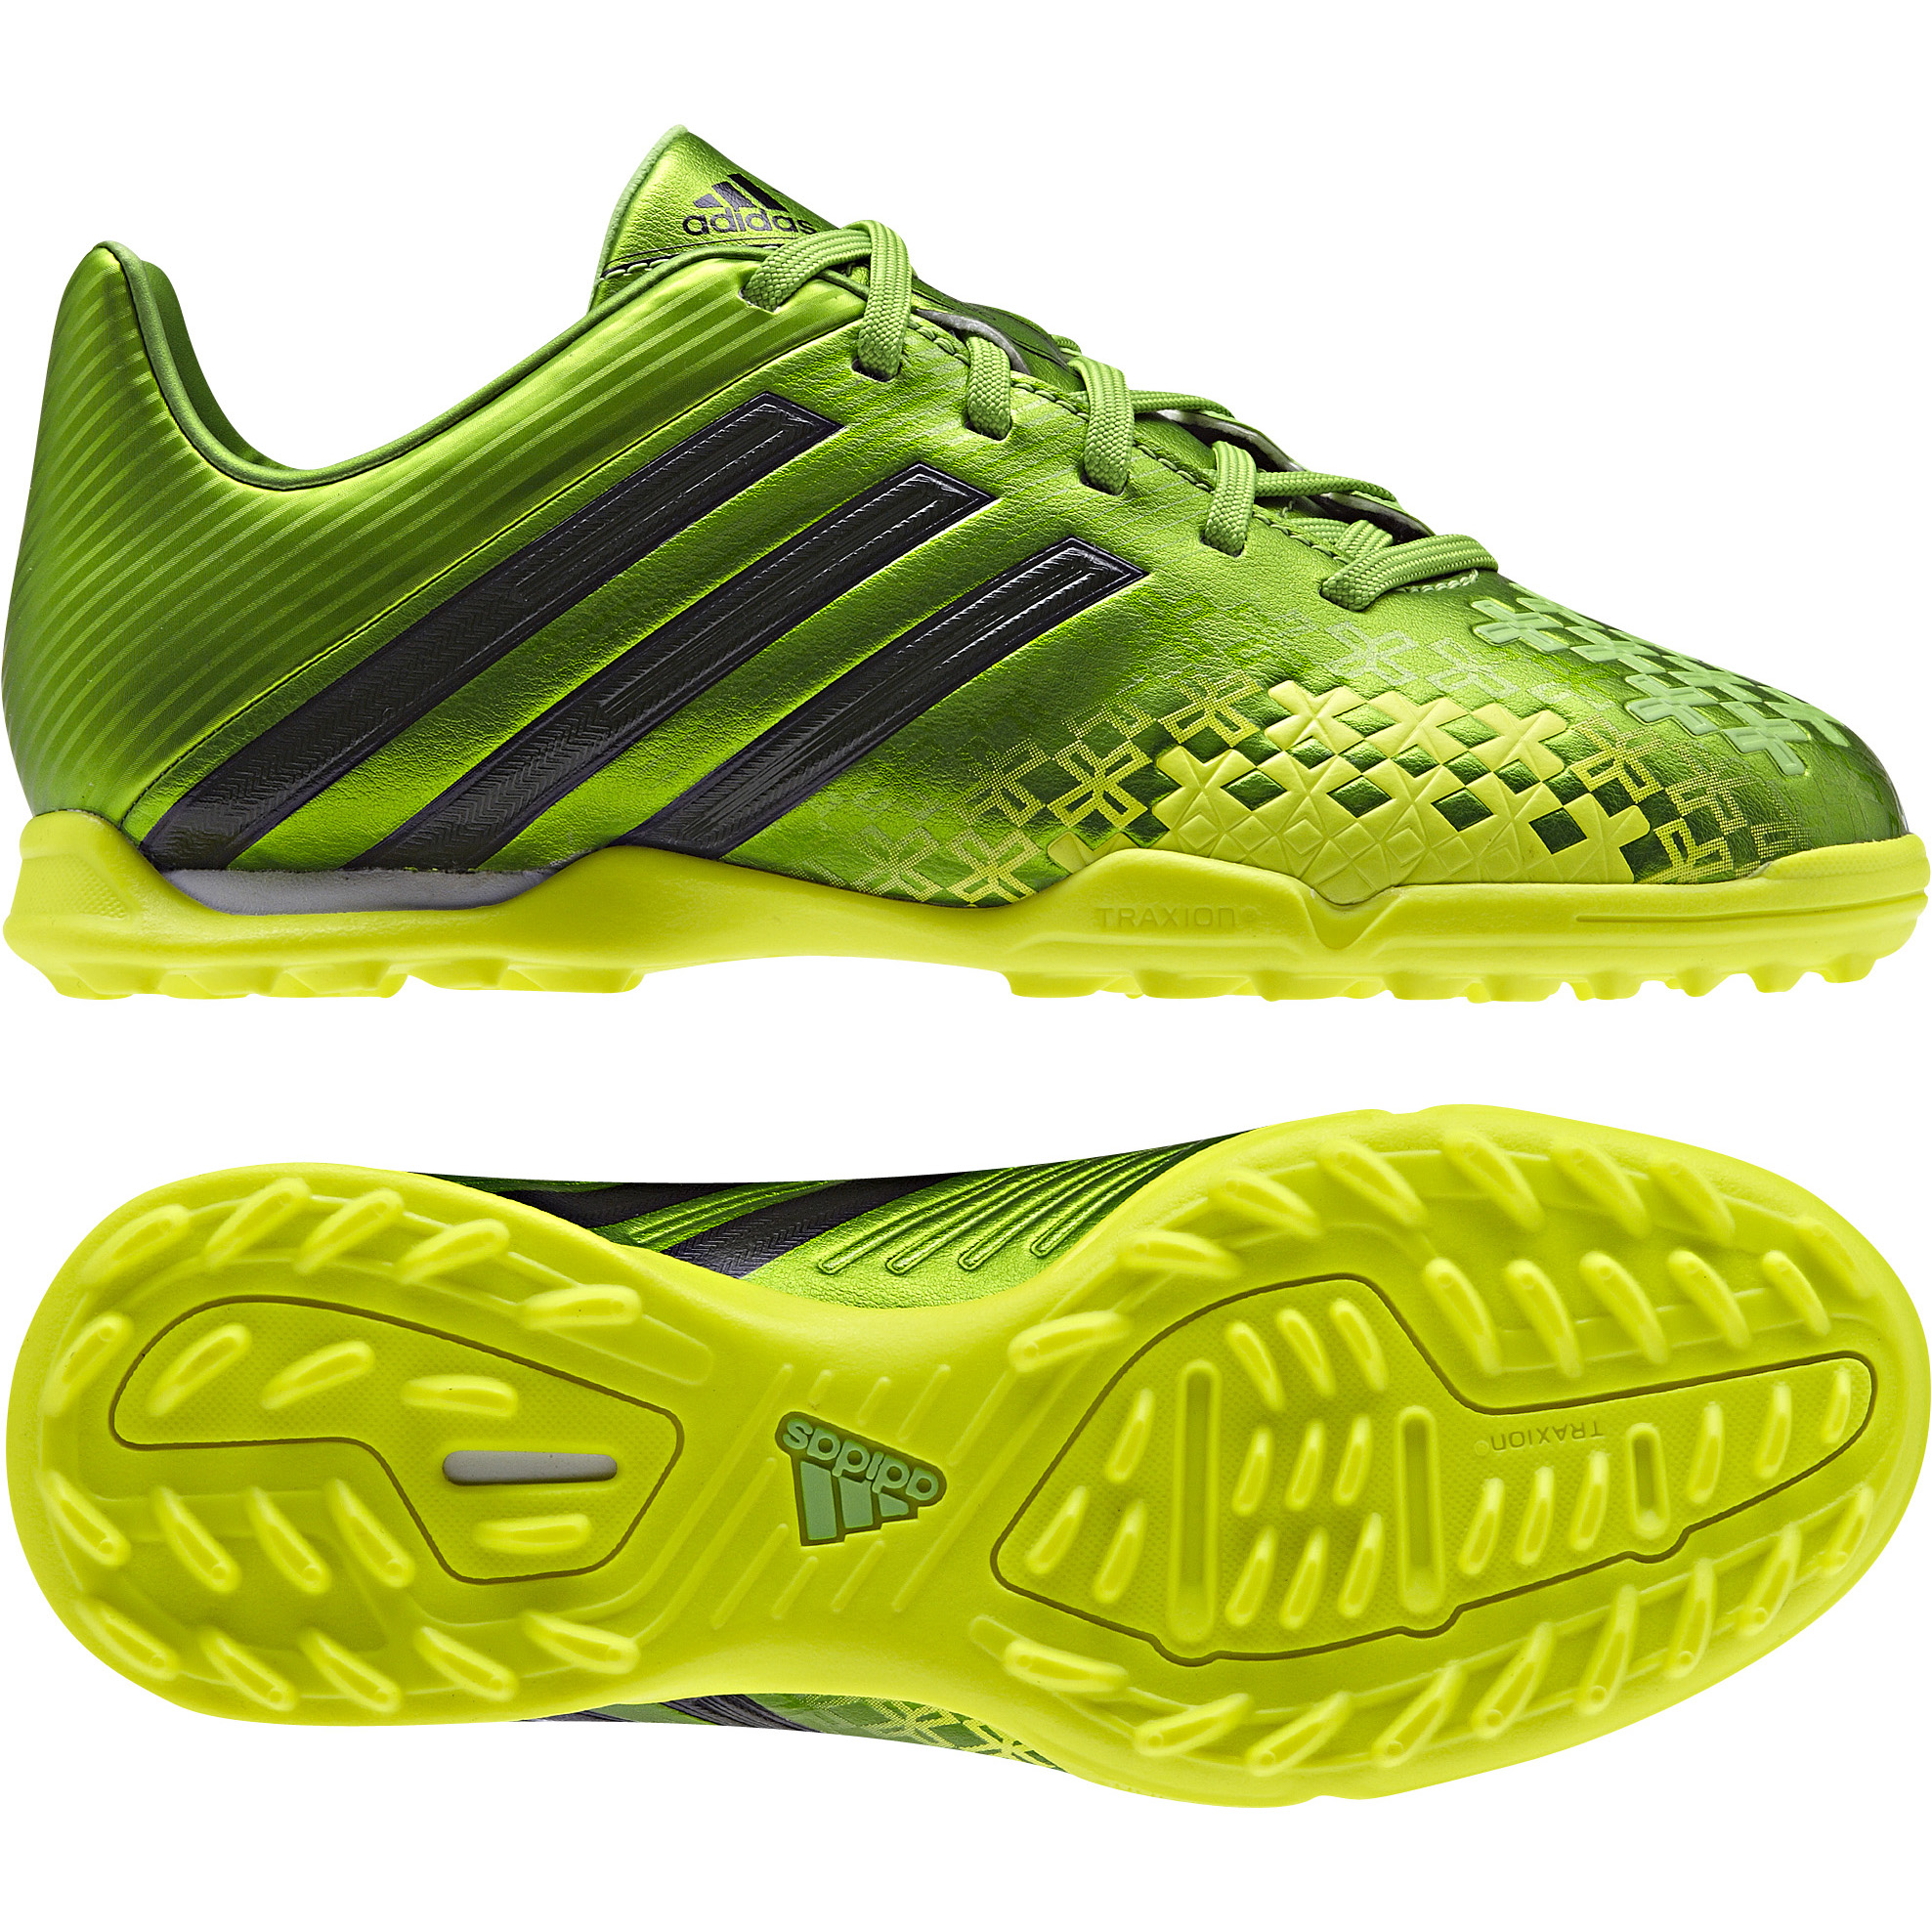 Adidas Predator Absolado LZ TRX Astroturf Trainers - Kids Green